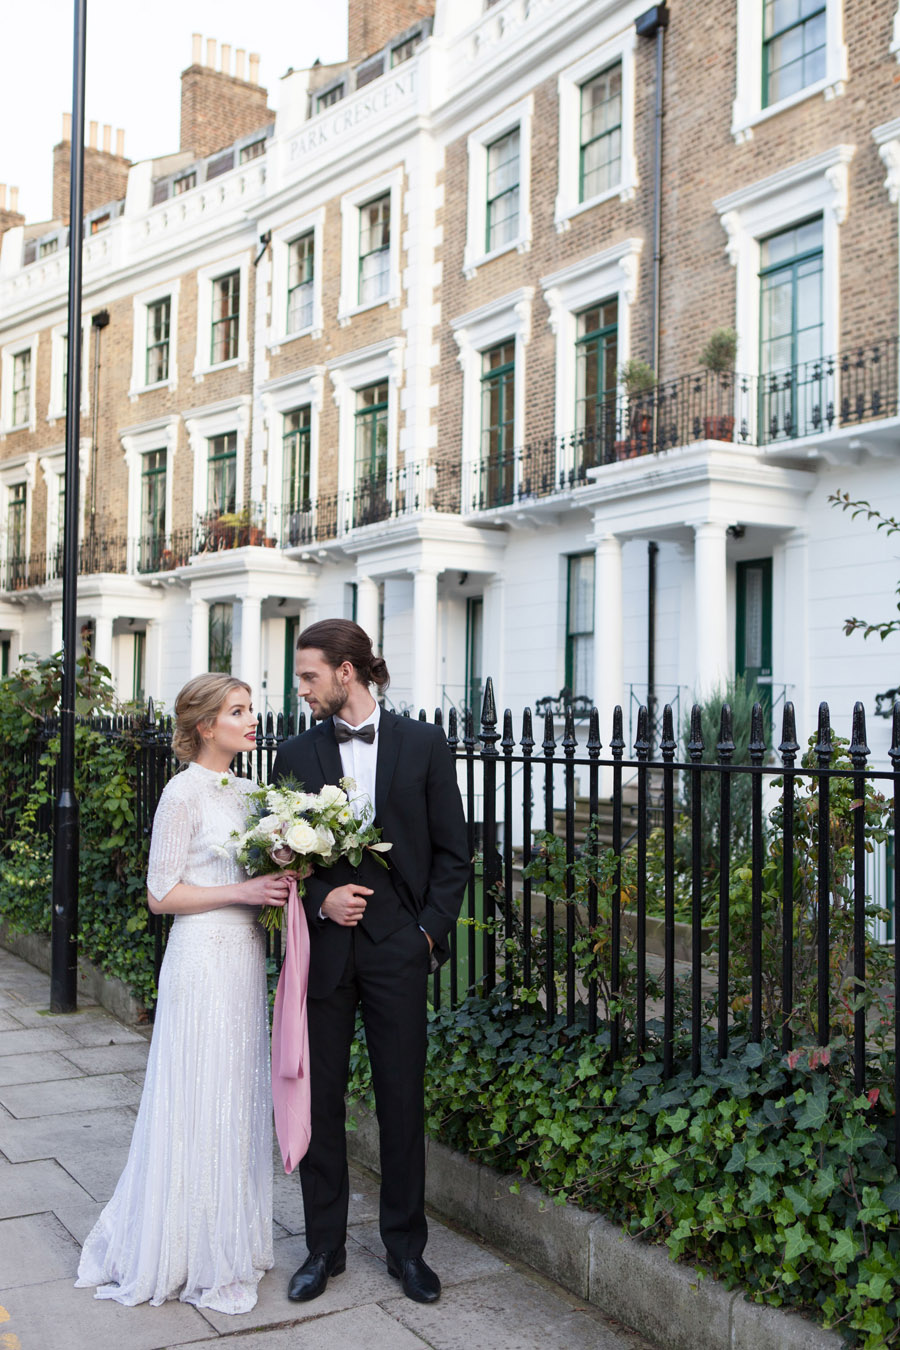 Elegant and timeless wedding look for 2019 brides and grooms, image credit Amanda Karen Photography (38)